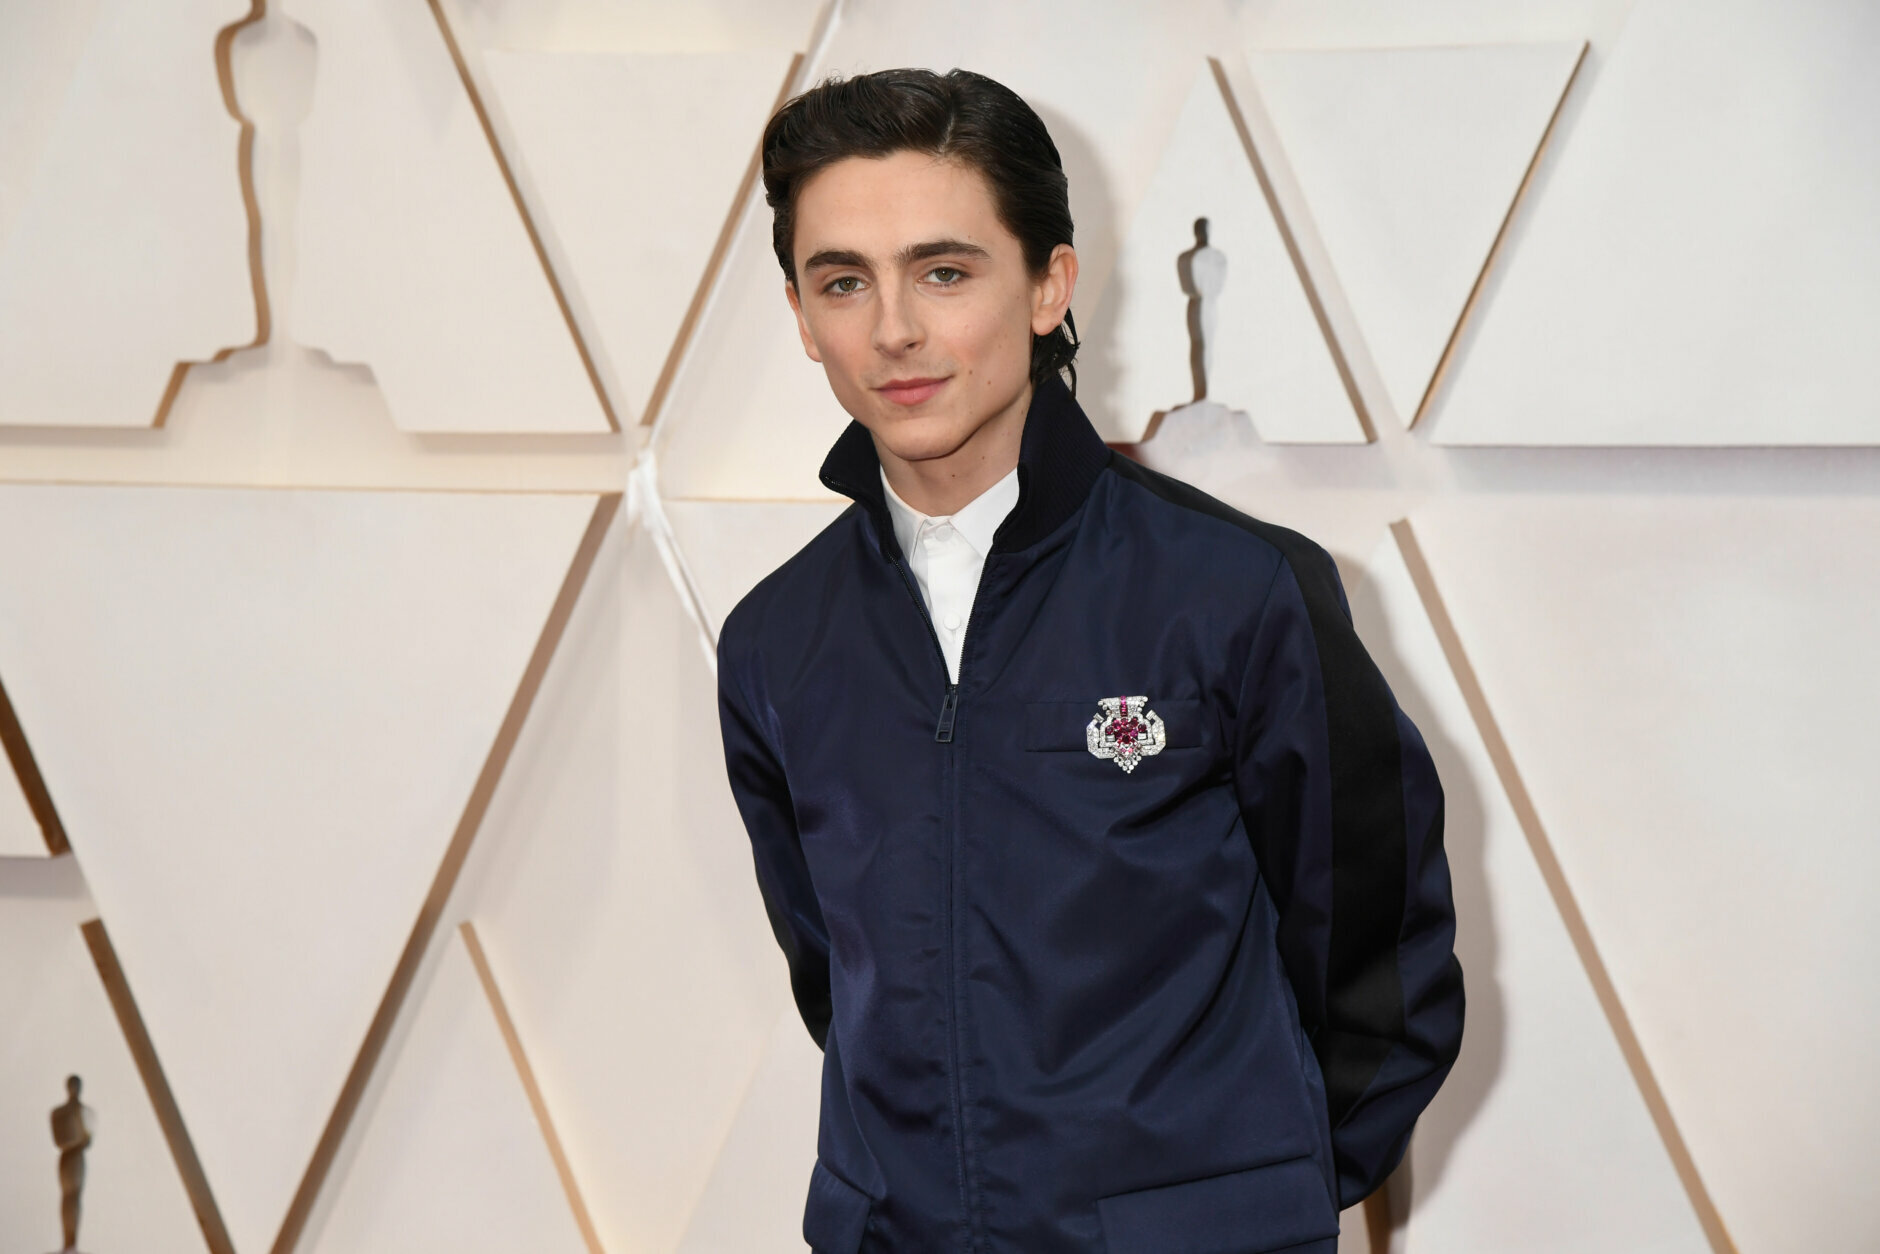 HOLLYWOOD, CALIFORNIA - FEBRUARY 09:  Timothée Chalamet attends the 92nd Annual Academy Awards at Hollywood and Highland on February 09, 2020 in Hollywood, California. (Photo by Jeff Kravitz/FilmMagic)